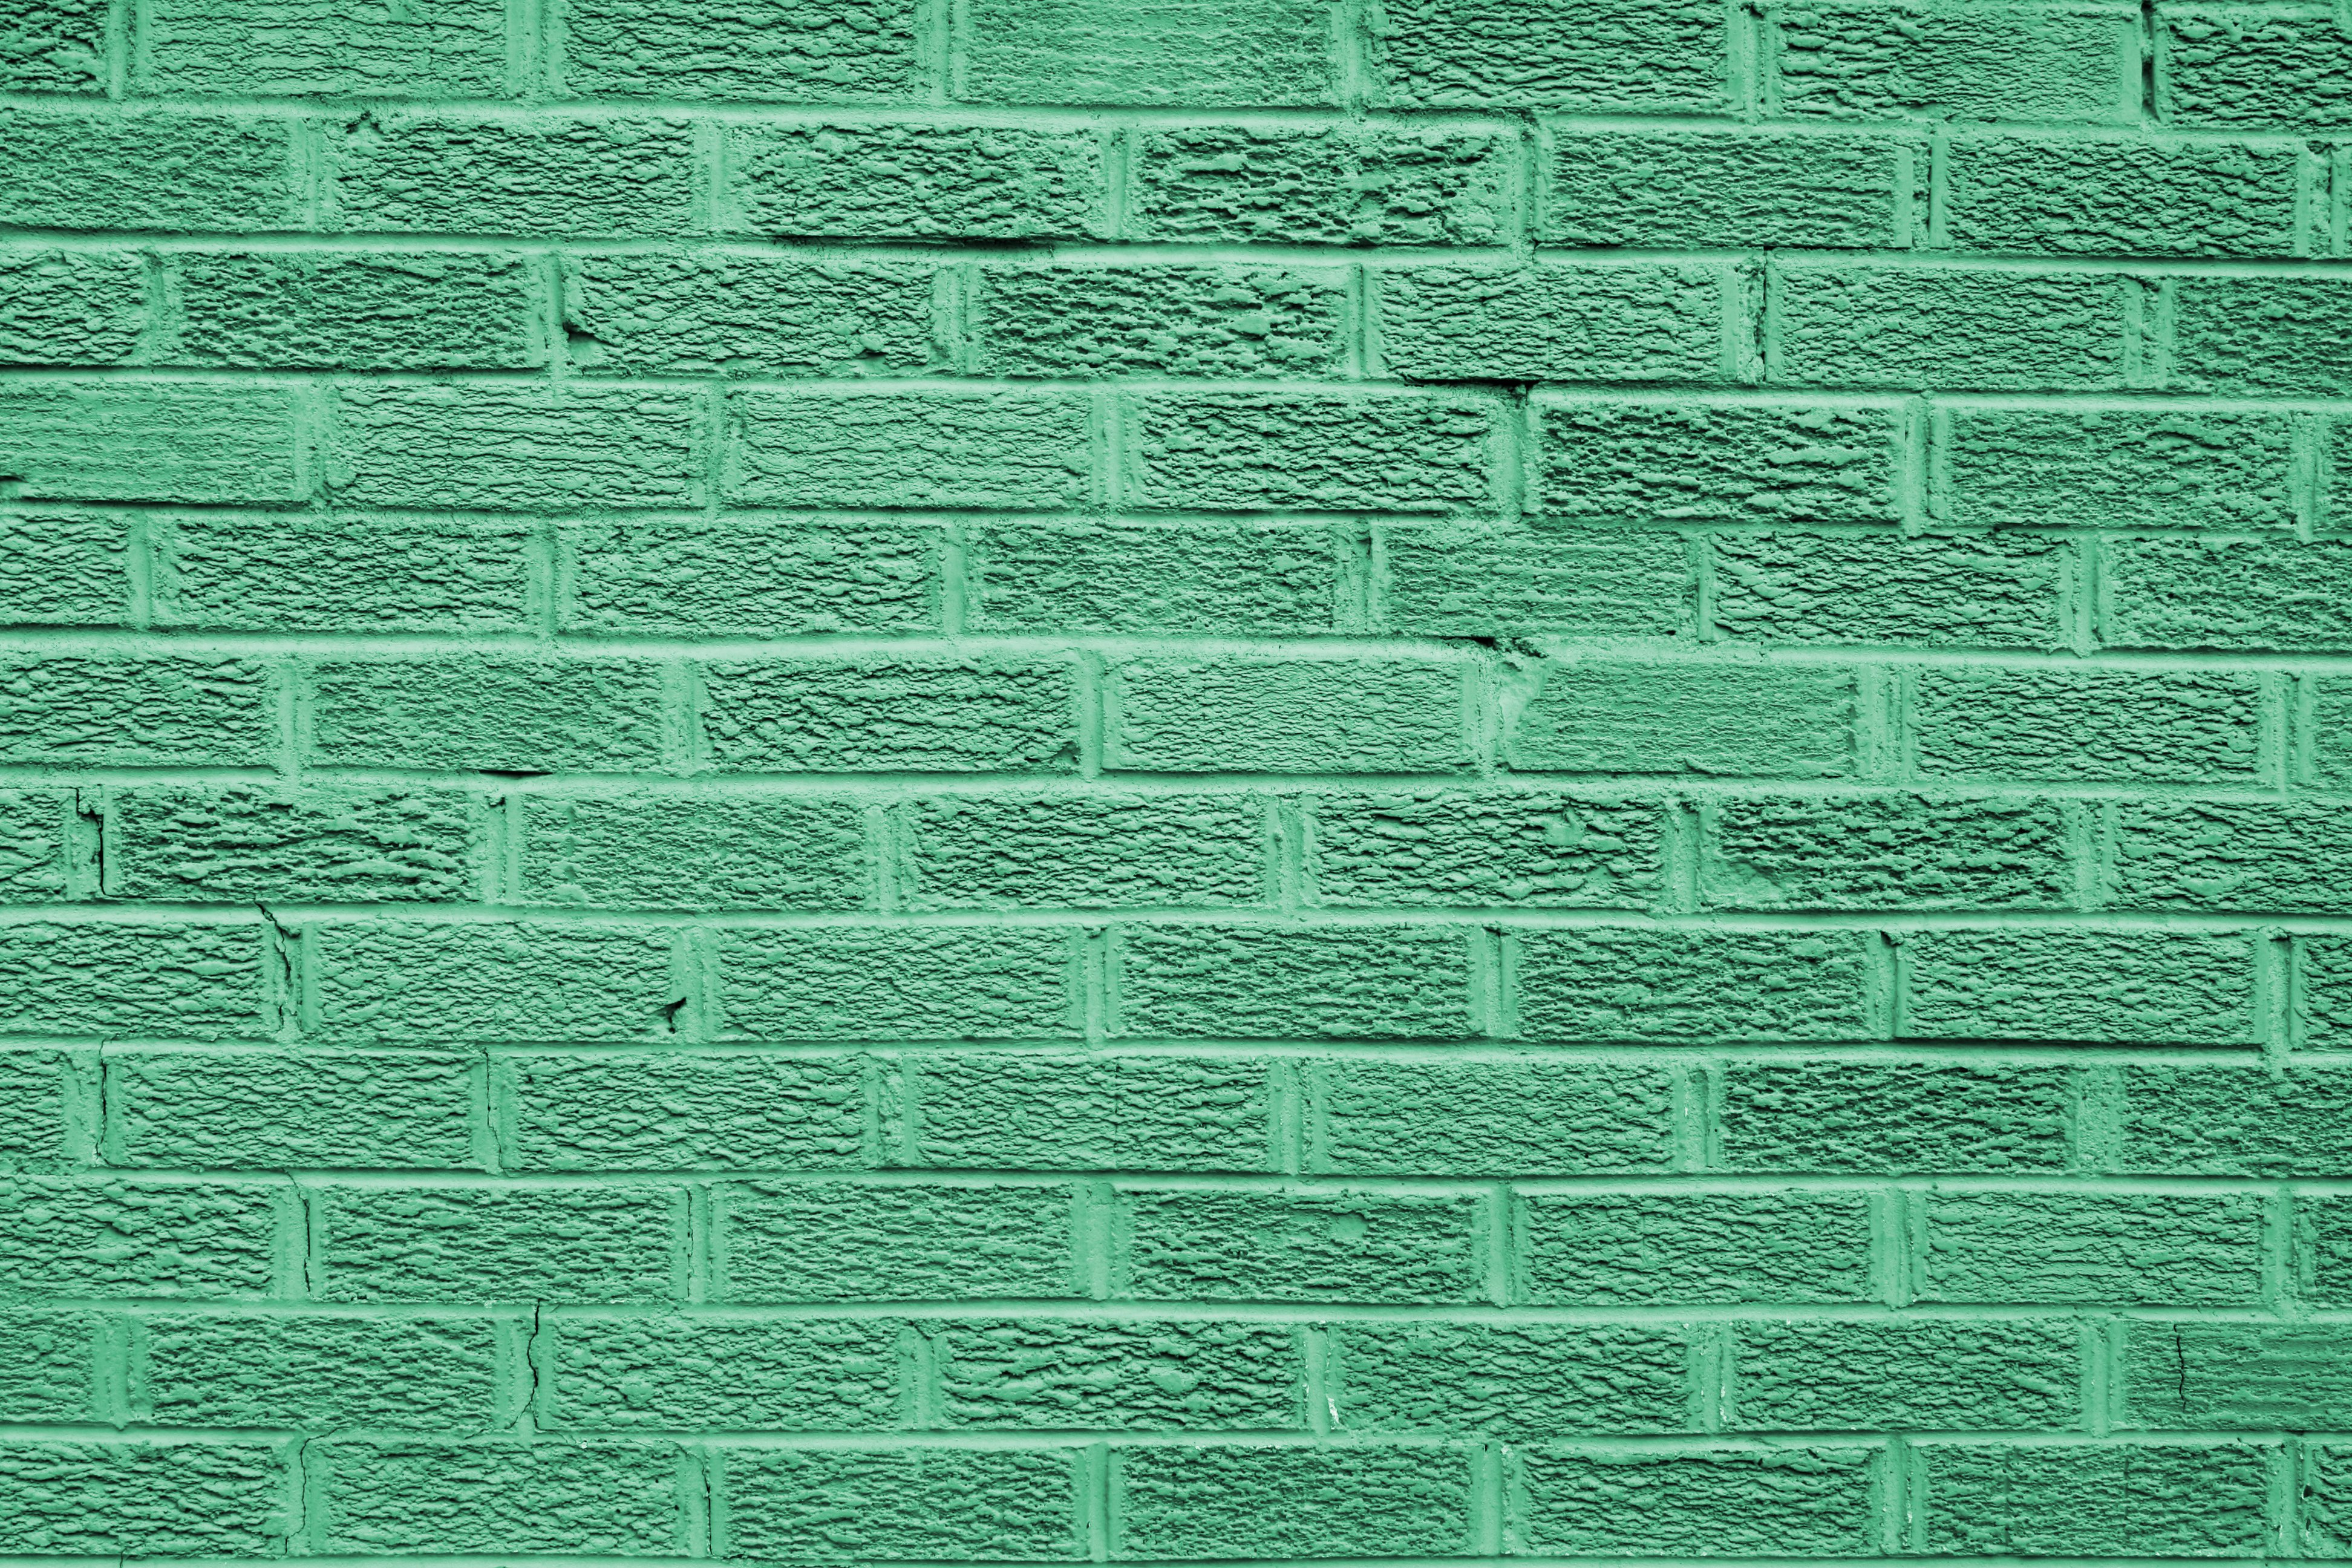 Green Colored Brick Wall Texture Picture Free Photograph